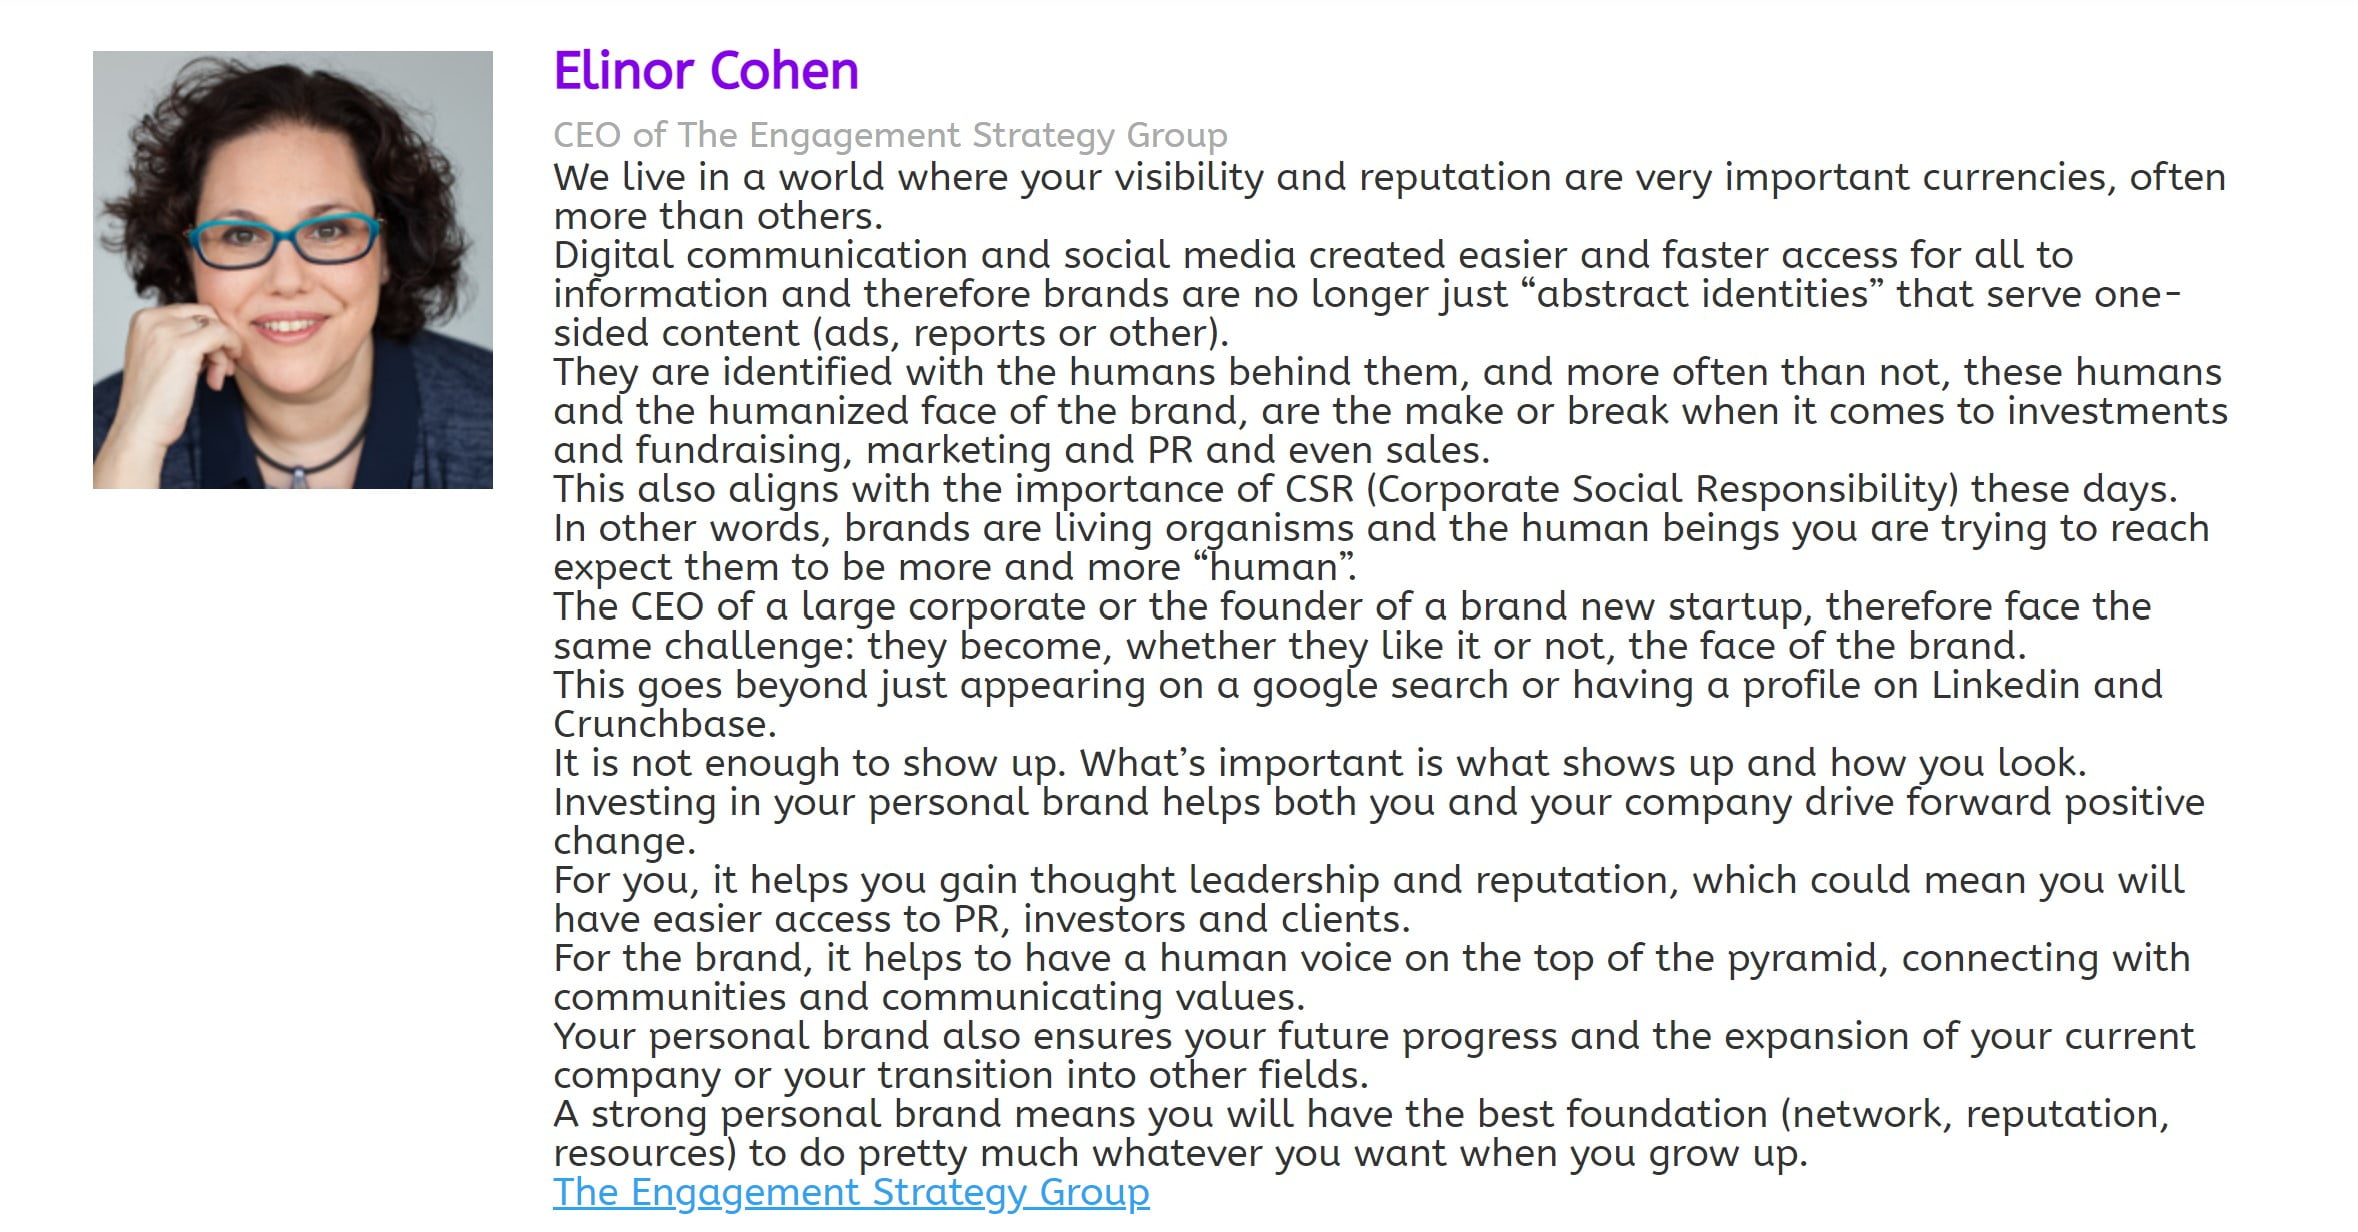 """Elinor Cohen on what """"personal brand"""" means"""